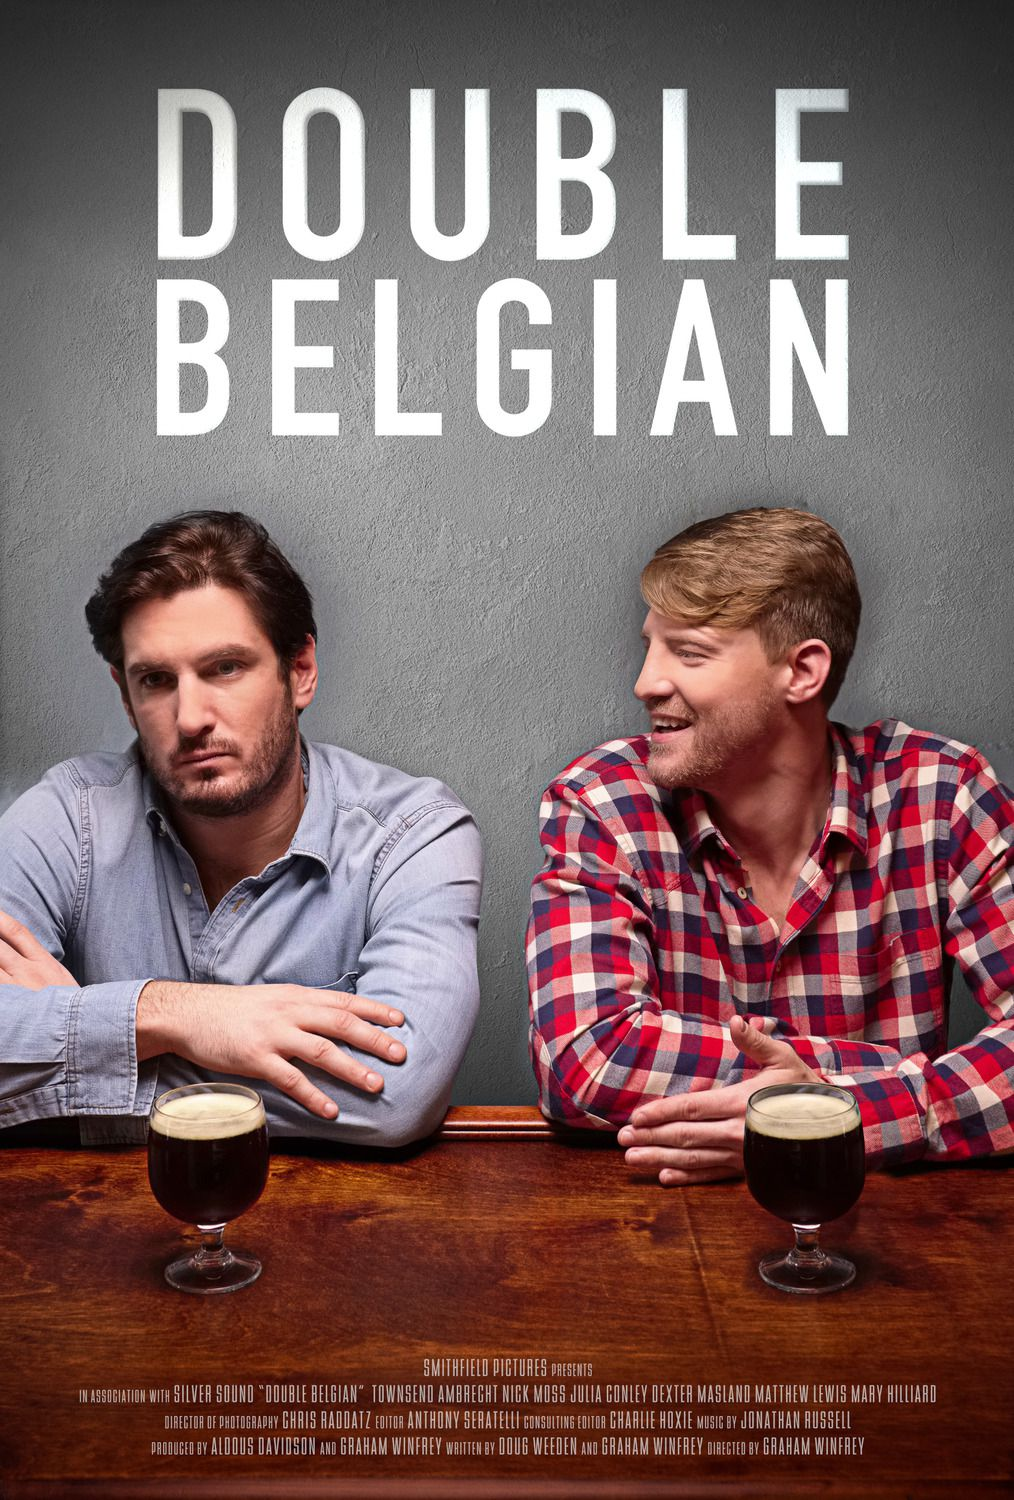 Double Belgian (2018) - film poster